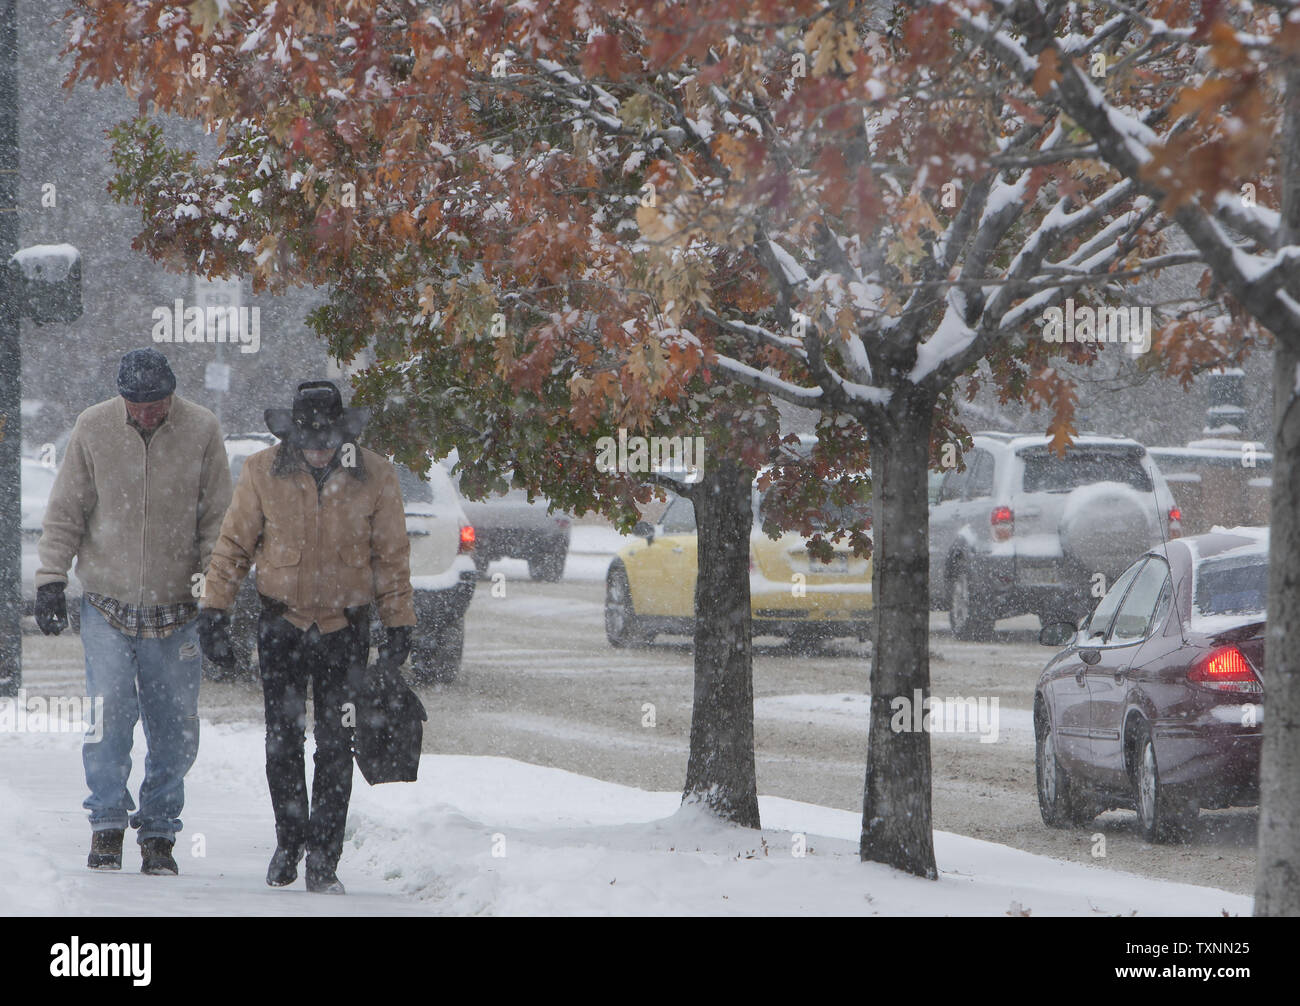 Fall colors still dominate some tress in the downtown area with workers trudging to work during a winter weather advisory in Denver on November 12, 2014.  Denver has single digit temperatures with wind chills between five-to 20 degrees below zero.    UPI/Gary C. Caskey - Stock Image